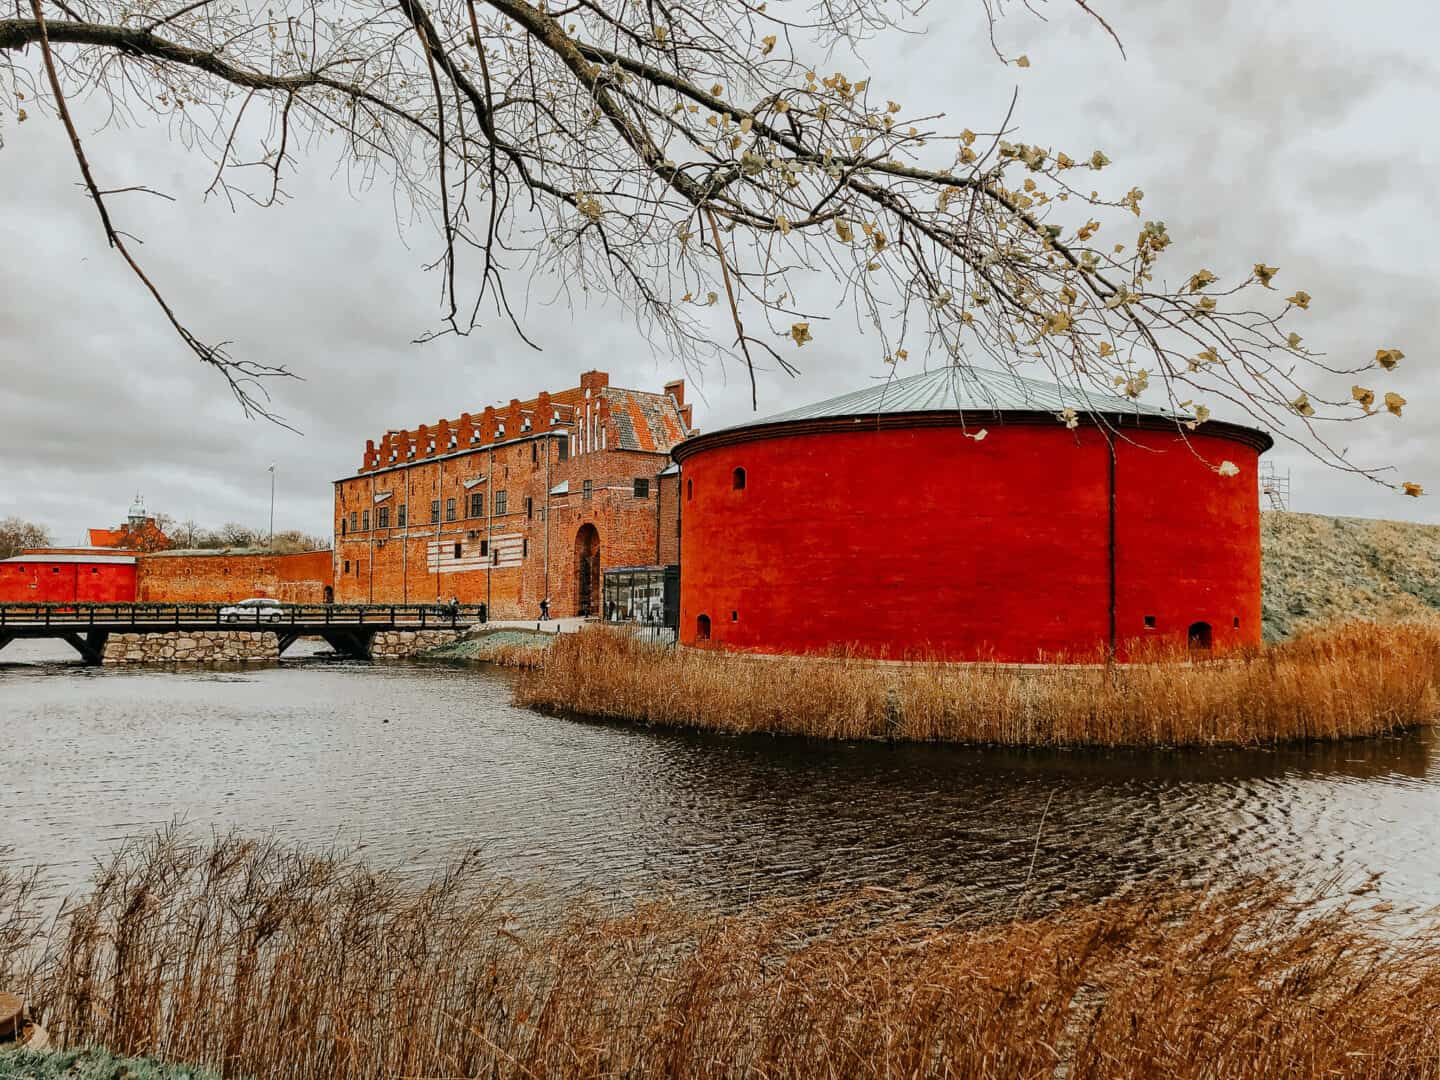 Red circular building with castle behind